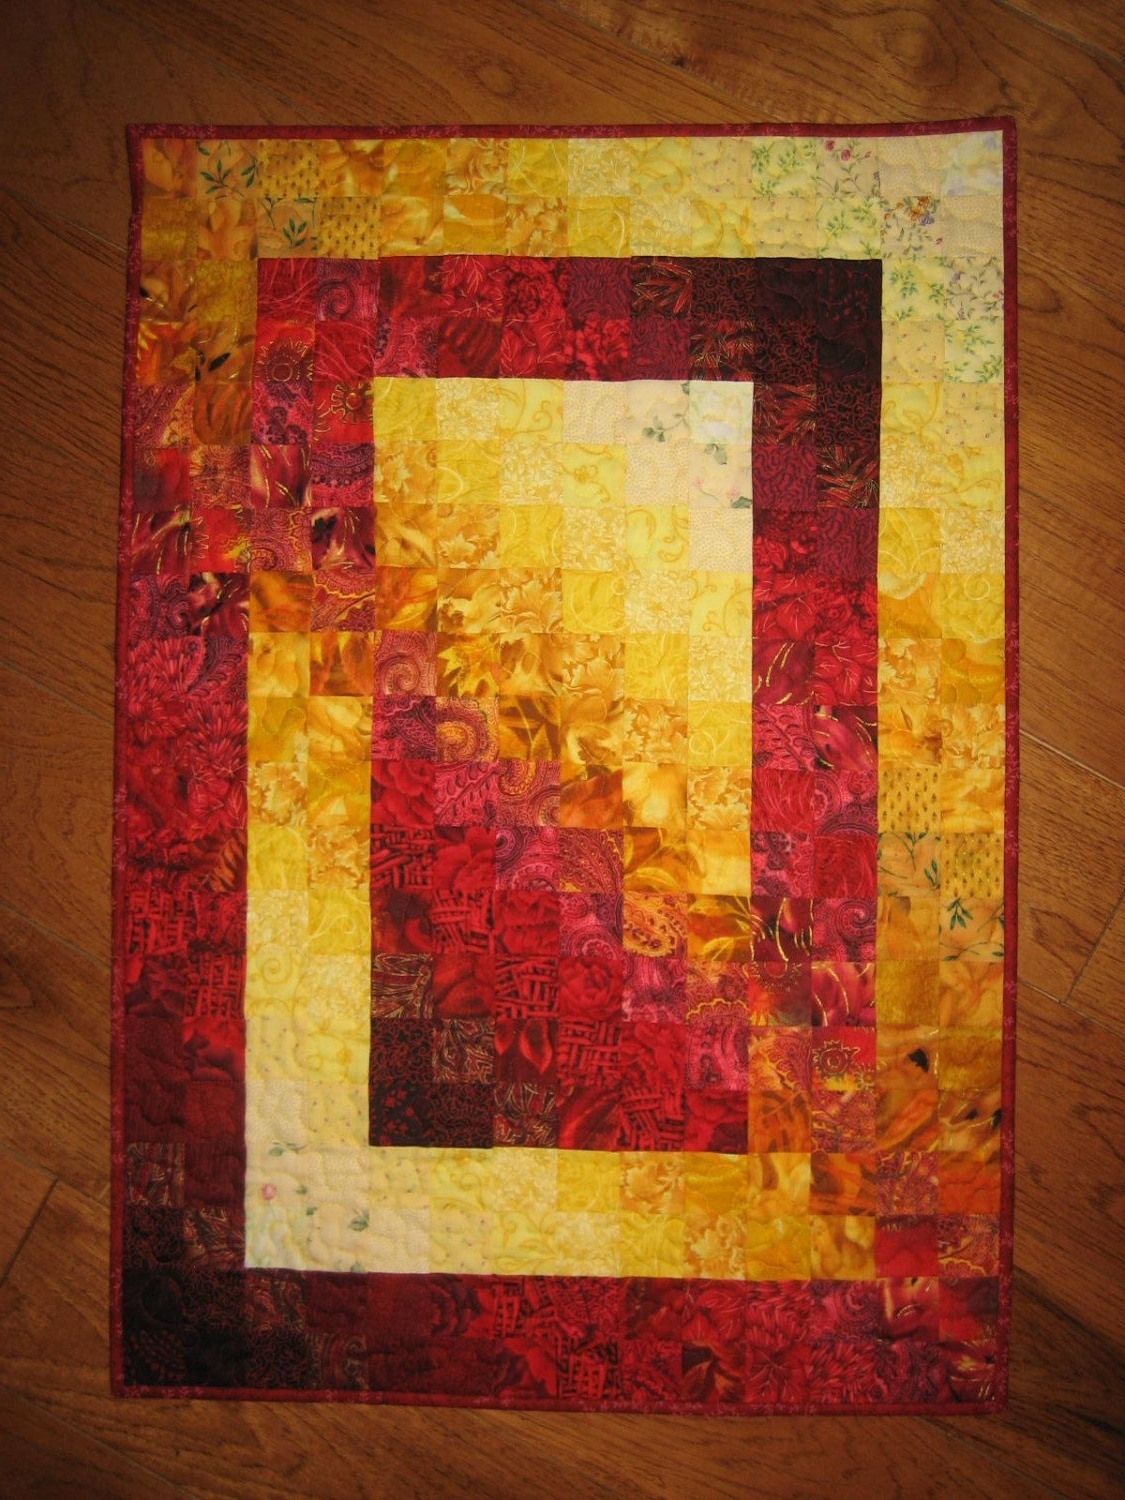 Handmade Textile Wall Art Within Best And Newest Art Quilt, Fire Red Yellow Orange Fabric Wall Hanging Abstract (Gallery 8 of 15)